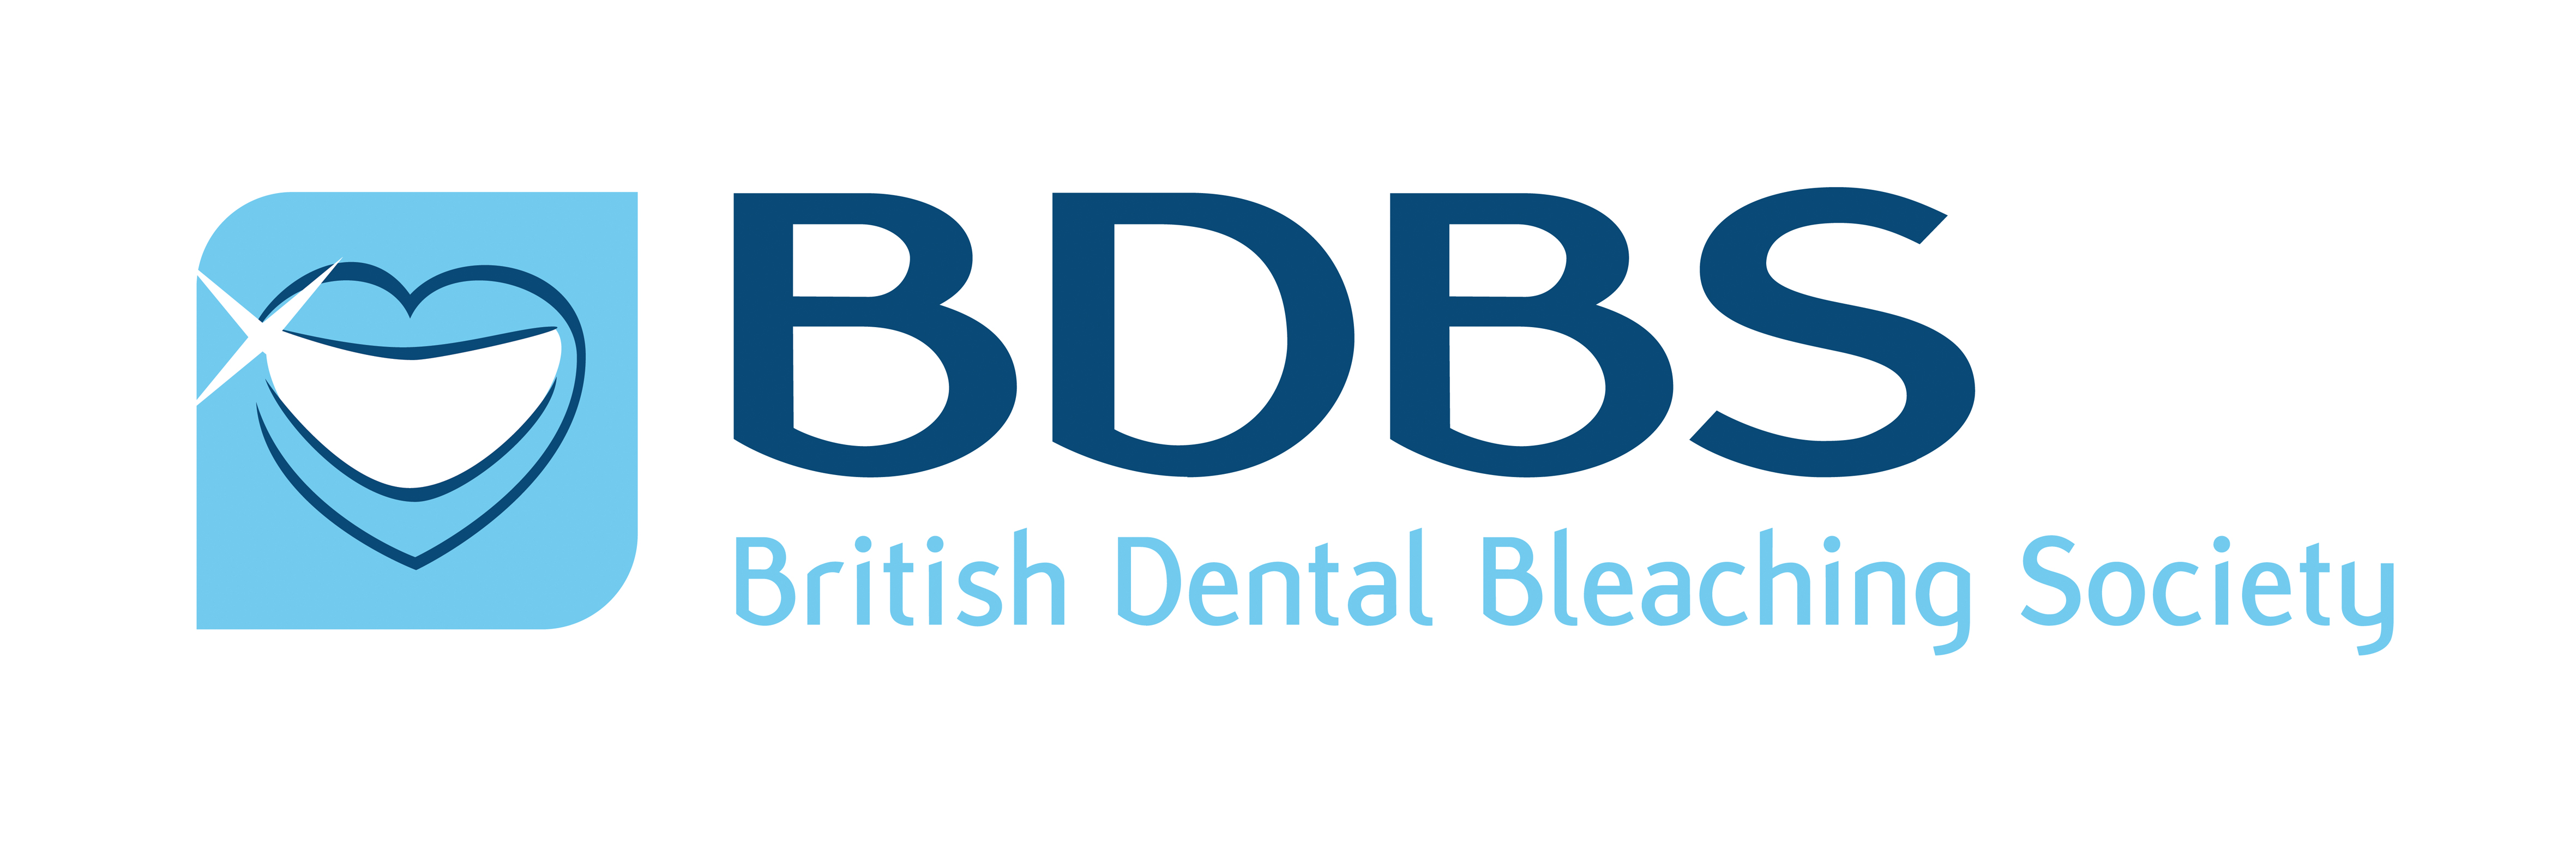 bdbs Regency Dental Practice Swanage Dorset